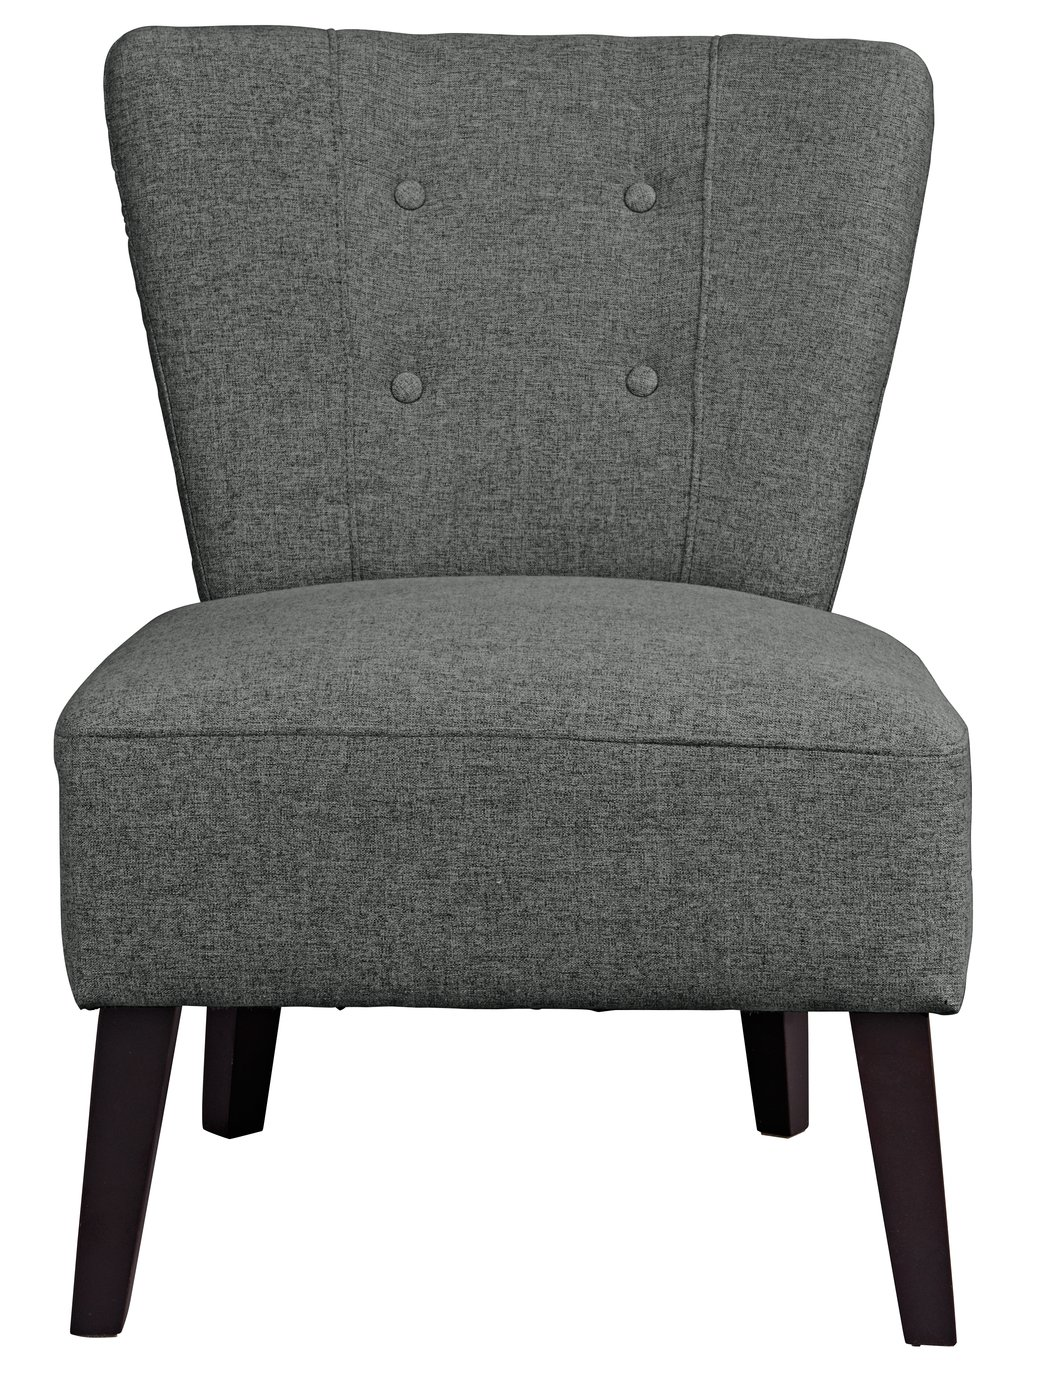 tv chair ikea executive accessories armchairs chairs recliners swivel cuddle argos home delilah fabric cocktail charcoal